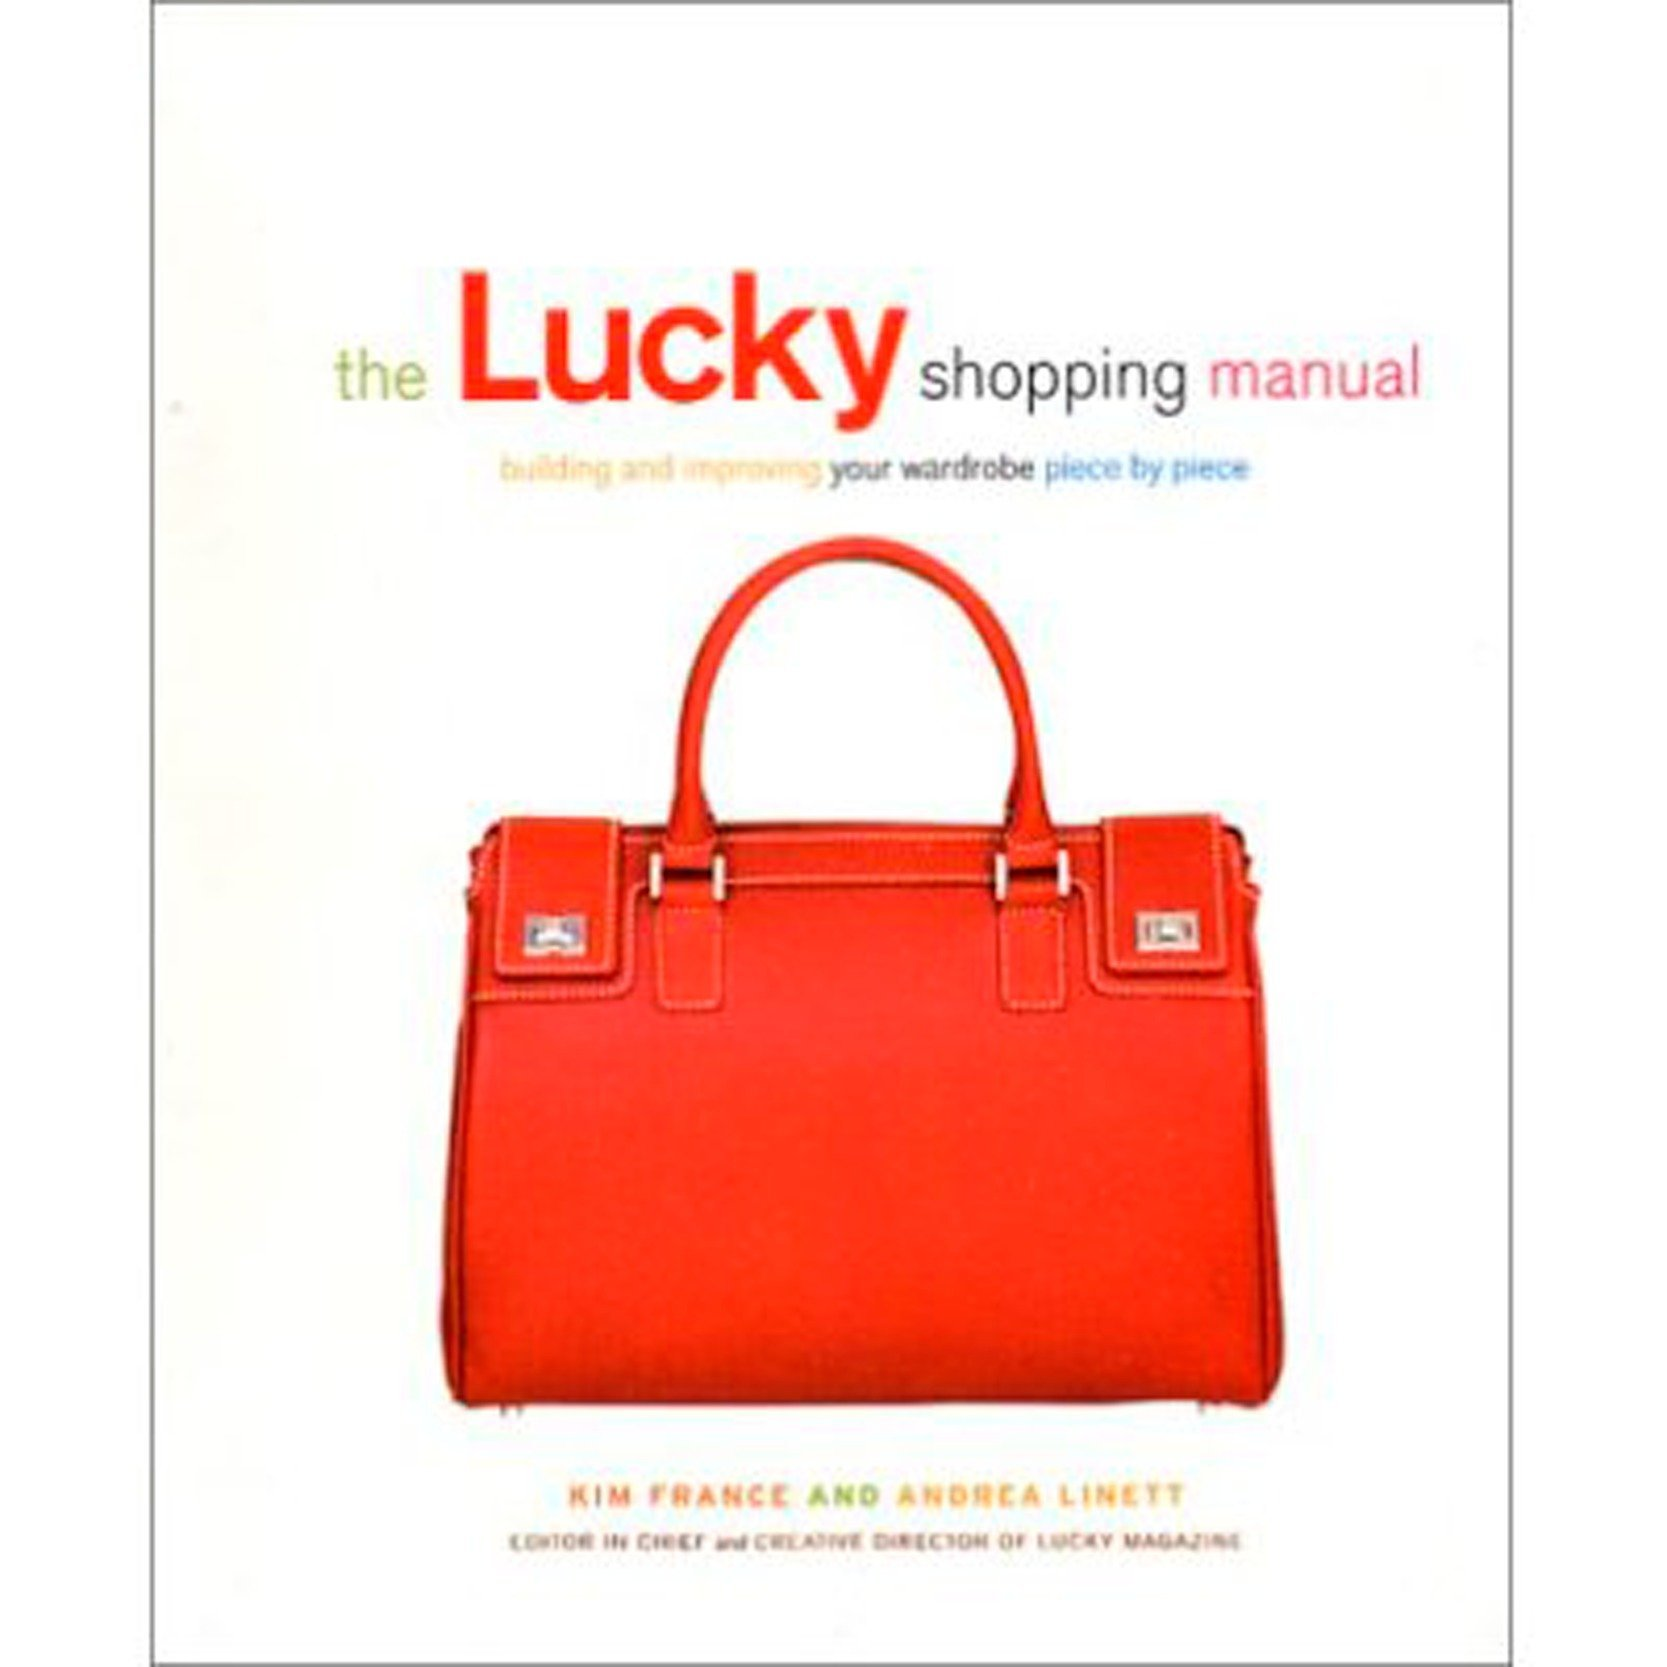 65d9534dfa12 The Lucky Shopping Manual  Building and Improving Your Wardrobe ...